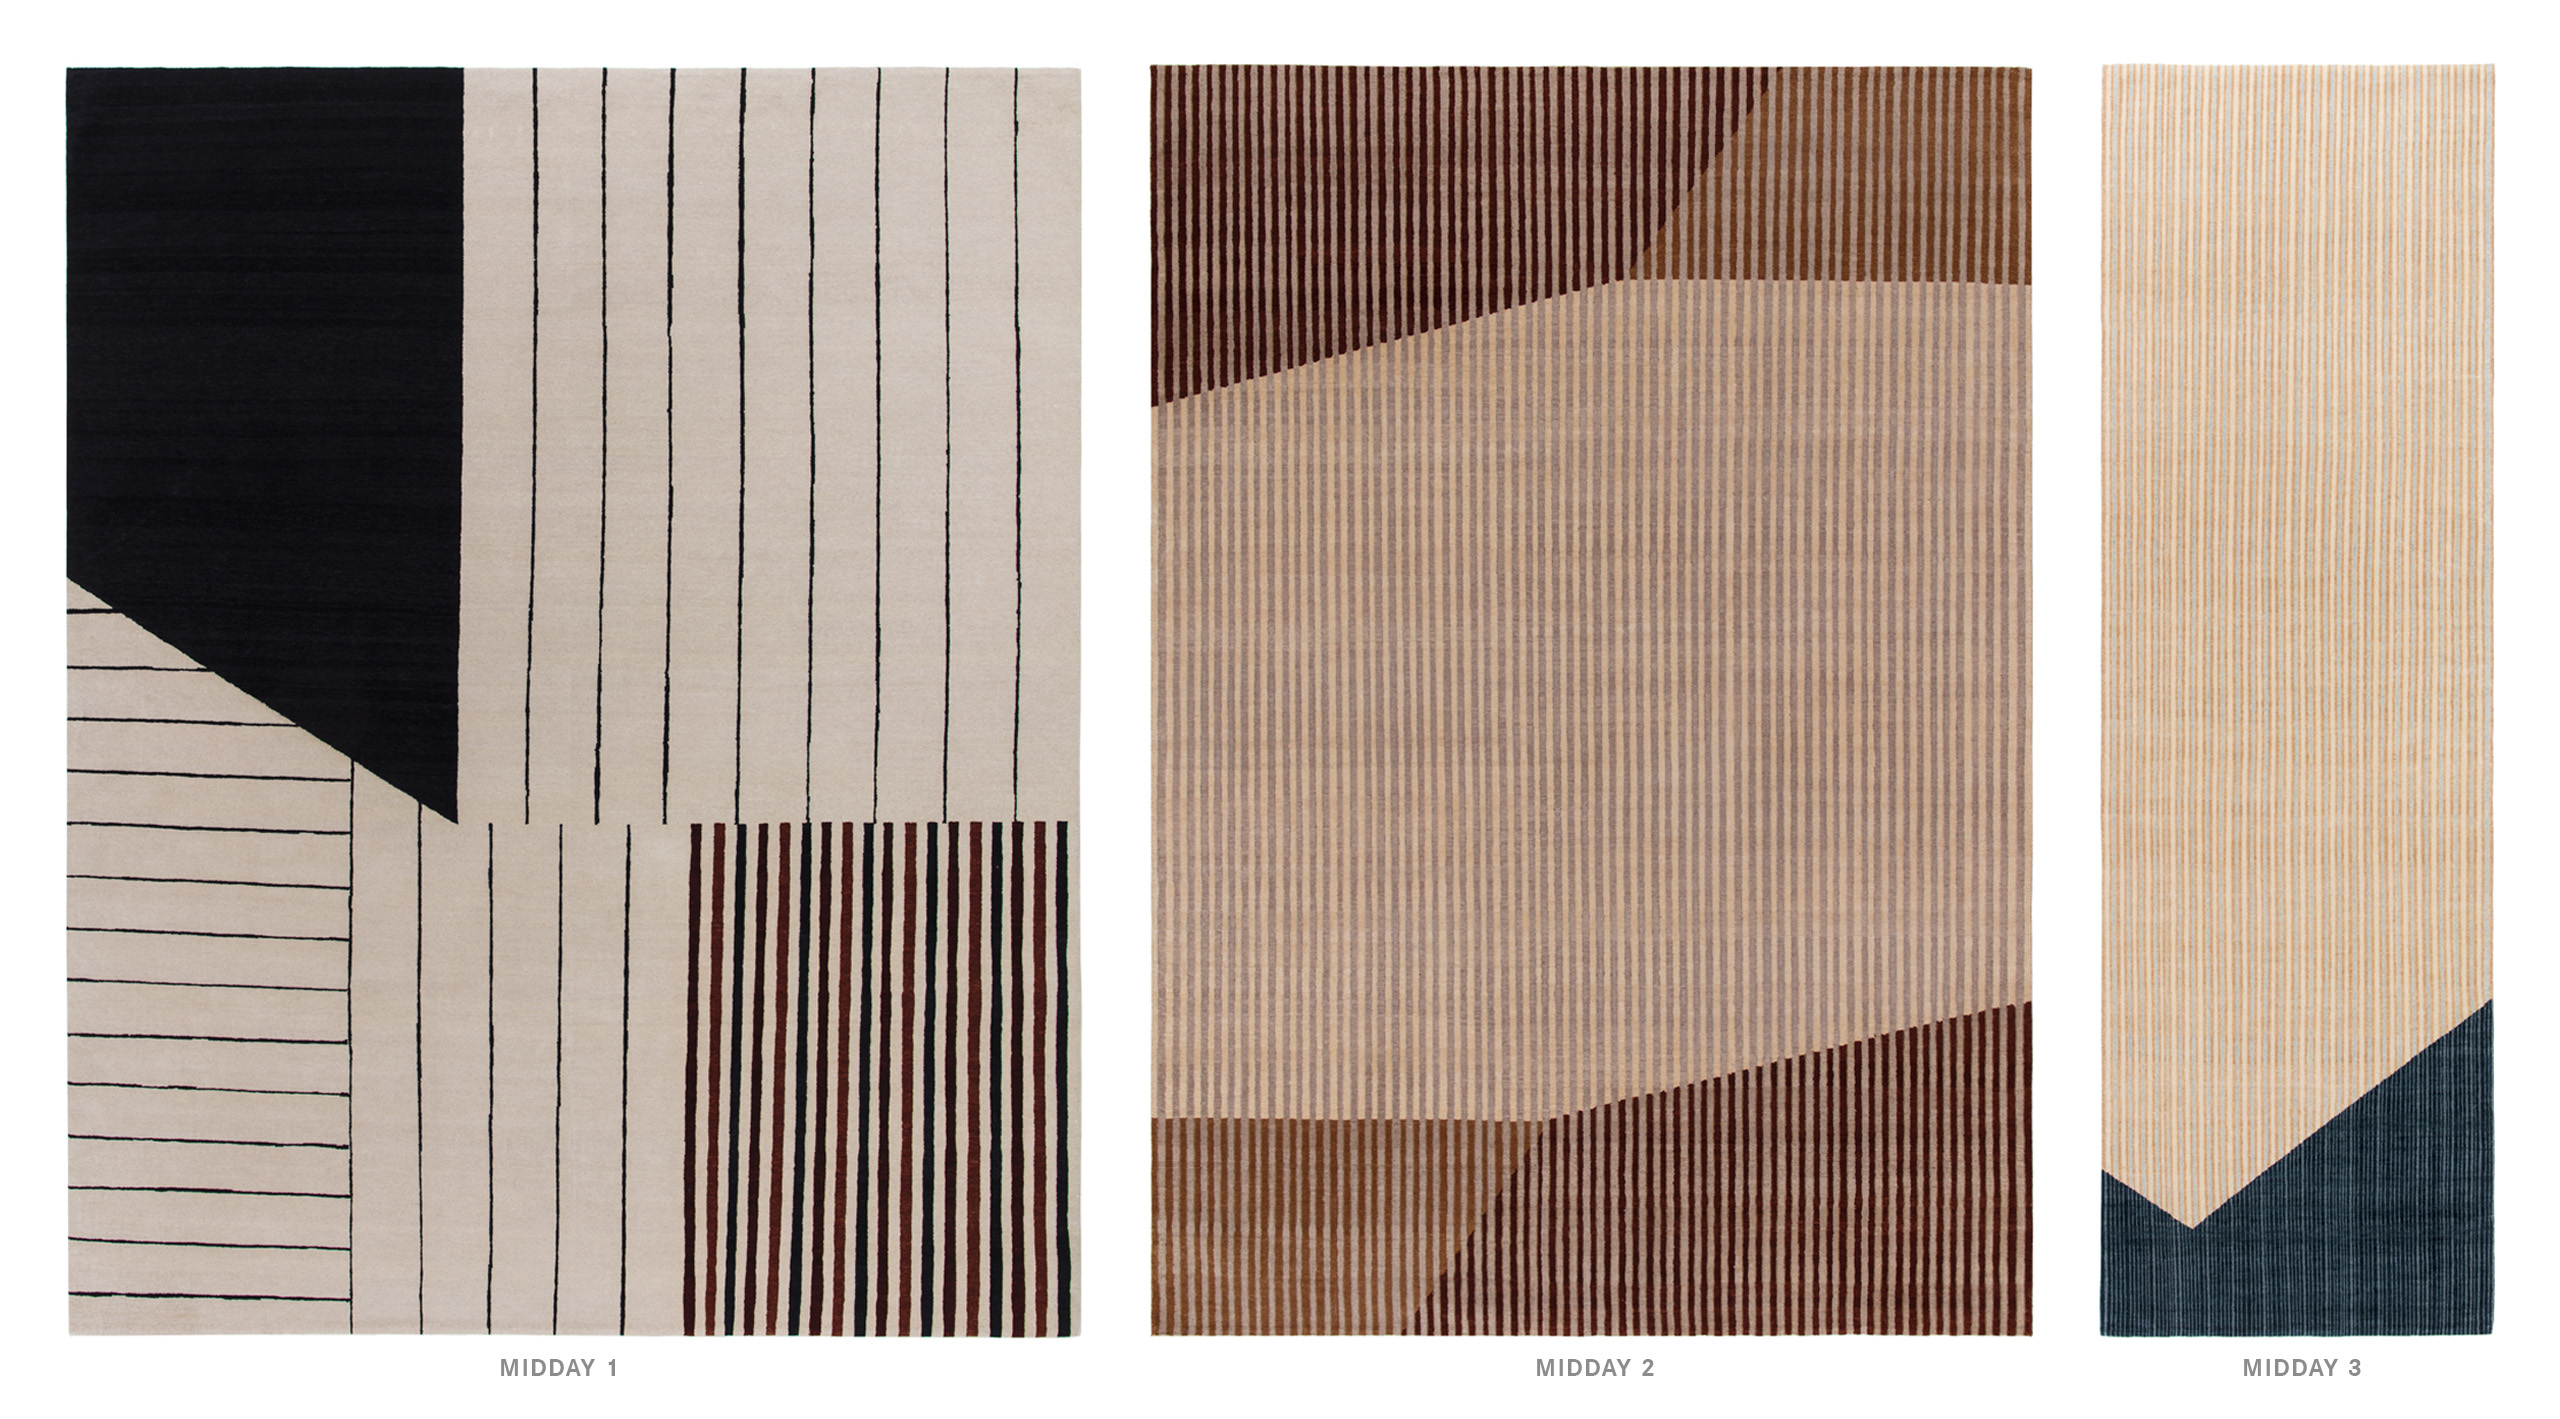 Midday 1, 2 and 3 textile patterns.